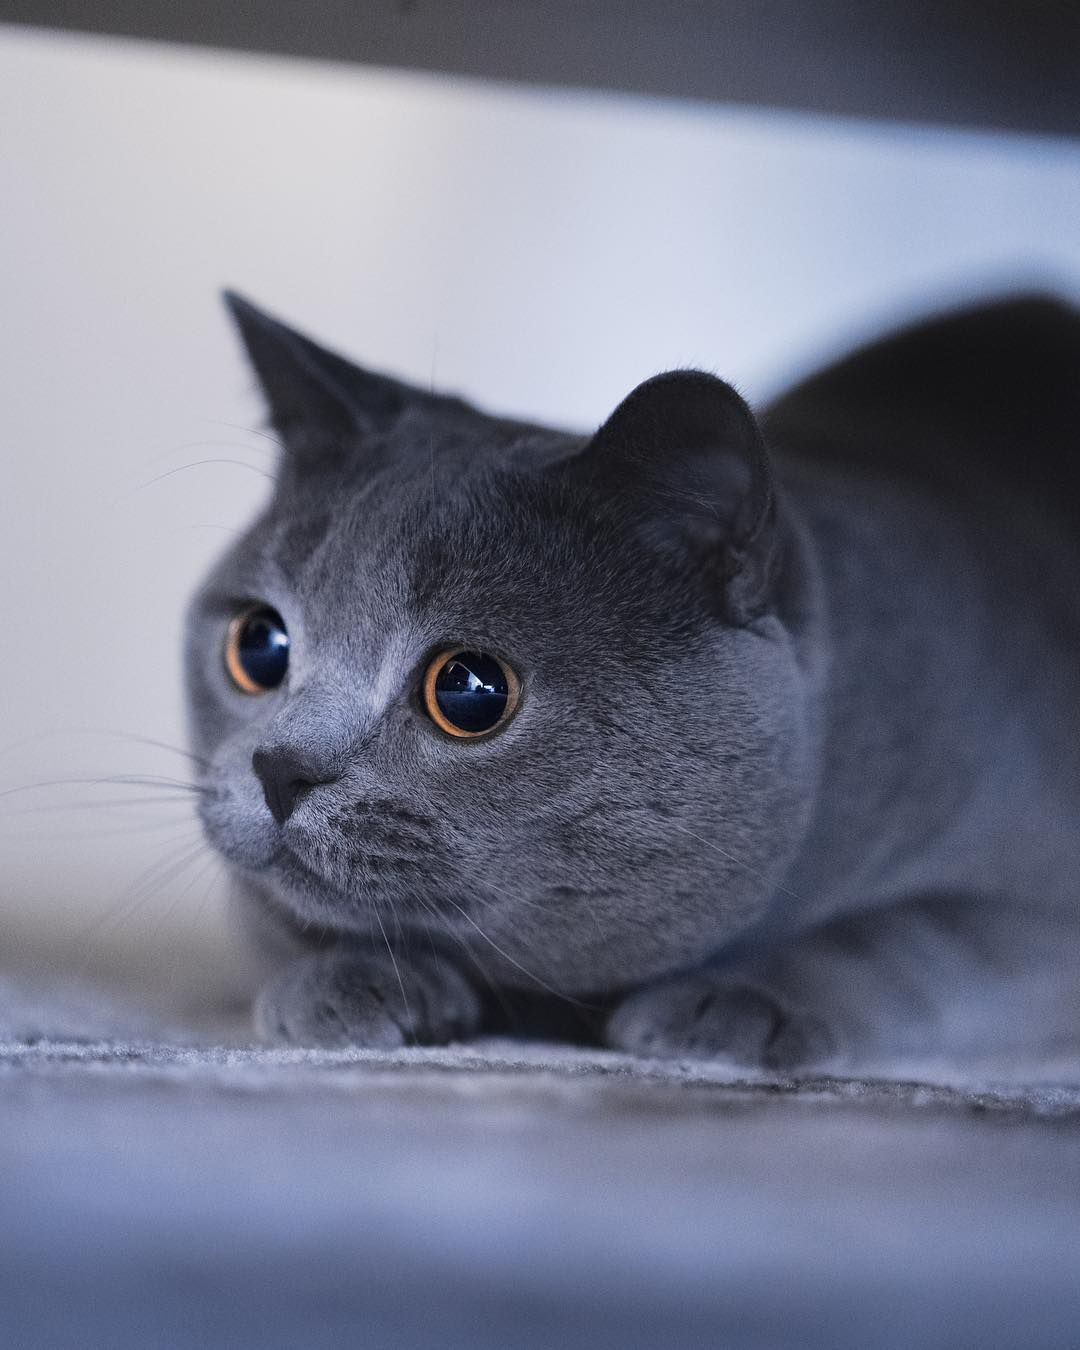 Wolfgang British Shorthair On Instagram So Close To Catching My Mouse I Can Almost Taste It Ca British Shorthair British Shorthair Cats Cat Spray